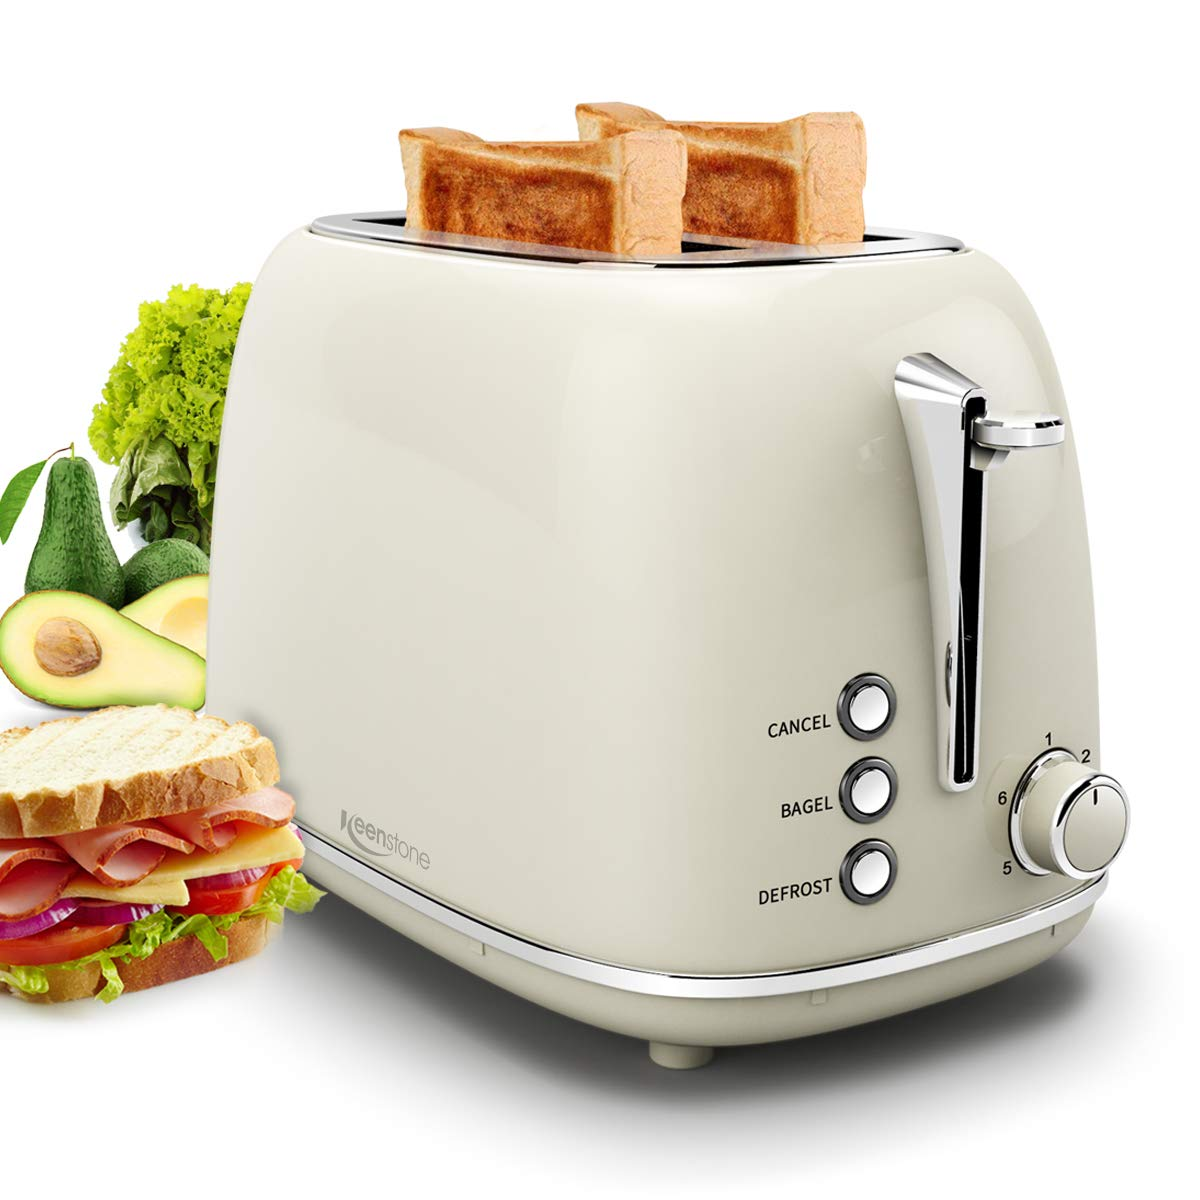 2 Slice Toaster, Compact Bread Toasters with 6 Browning Settings, 1.5 In Extra Wide Slots, Stainless Steel Housing, Bagel/Defrost/Cancel Function, Removable Crumb Tray, 825W for Breakfast Bread -Beige